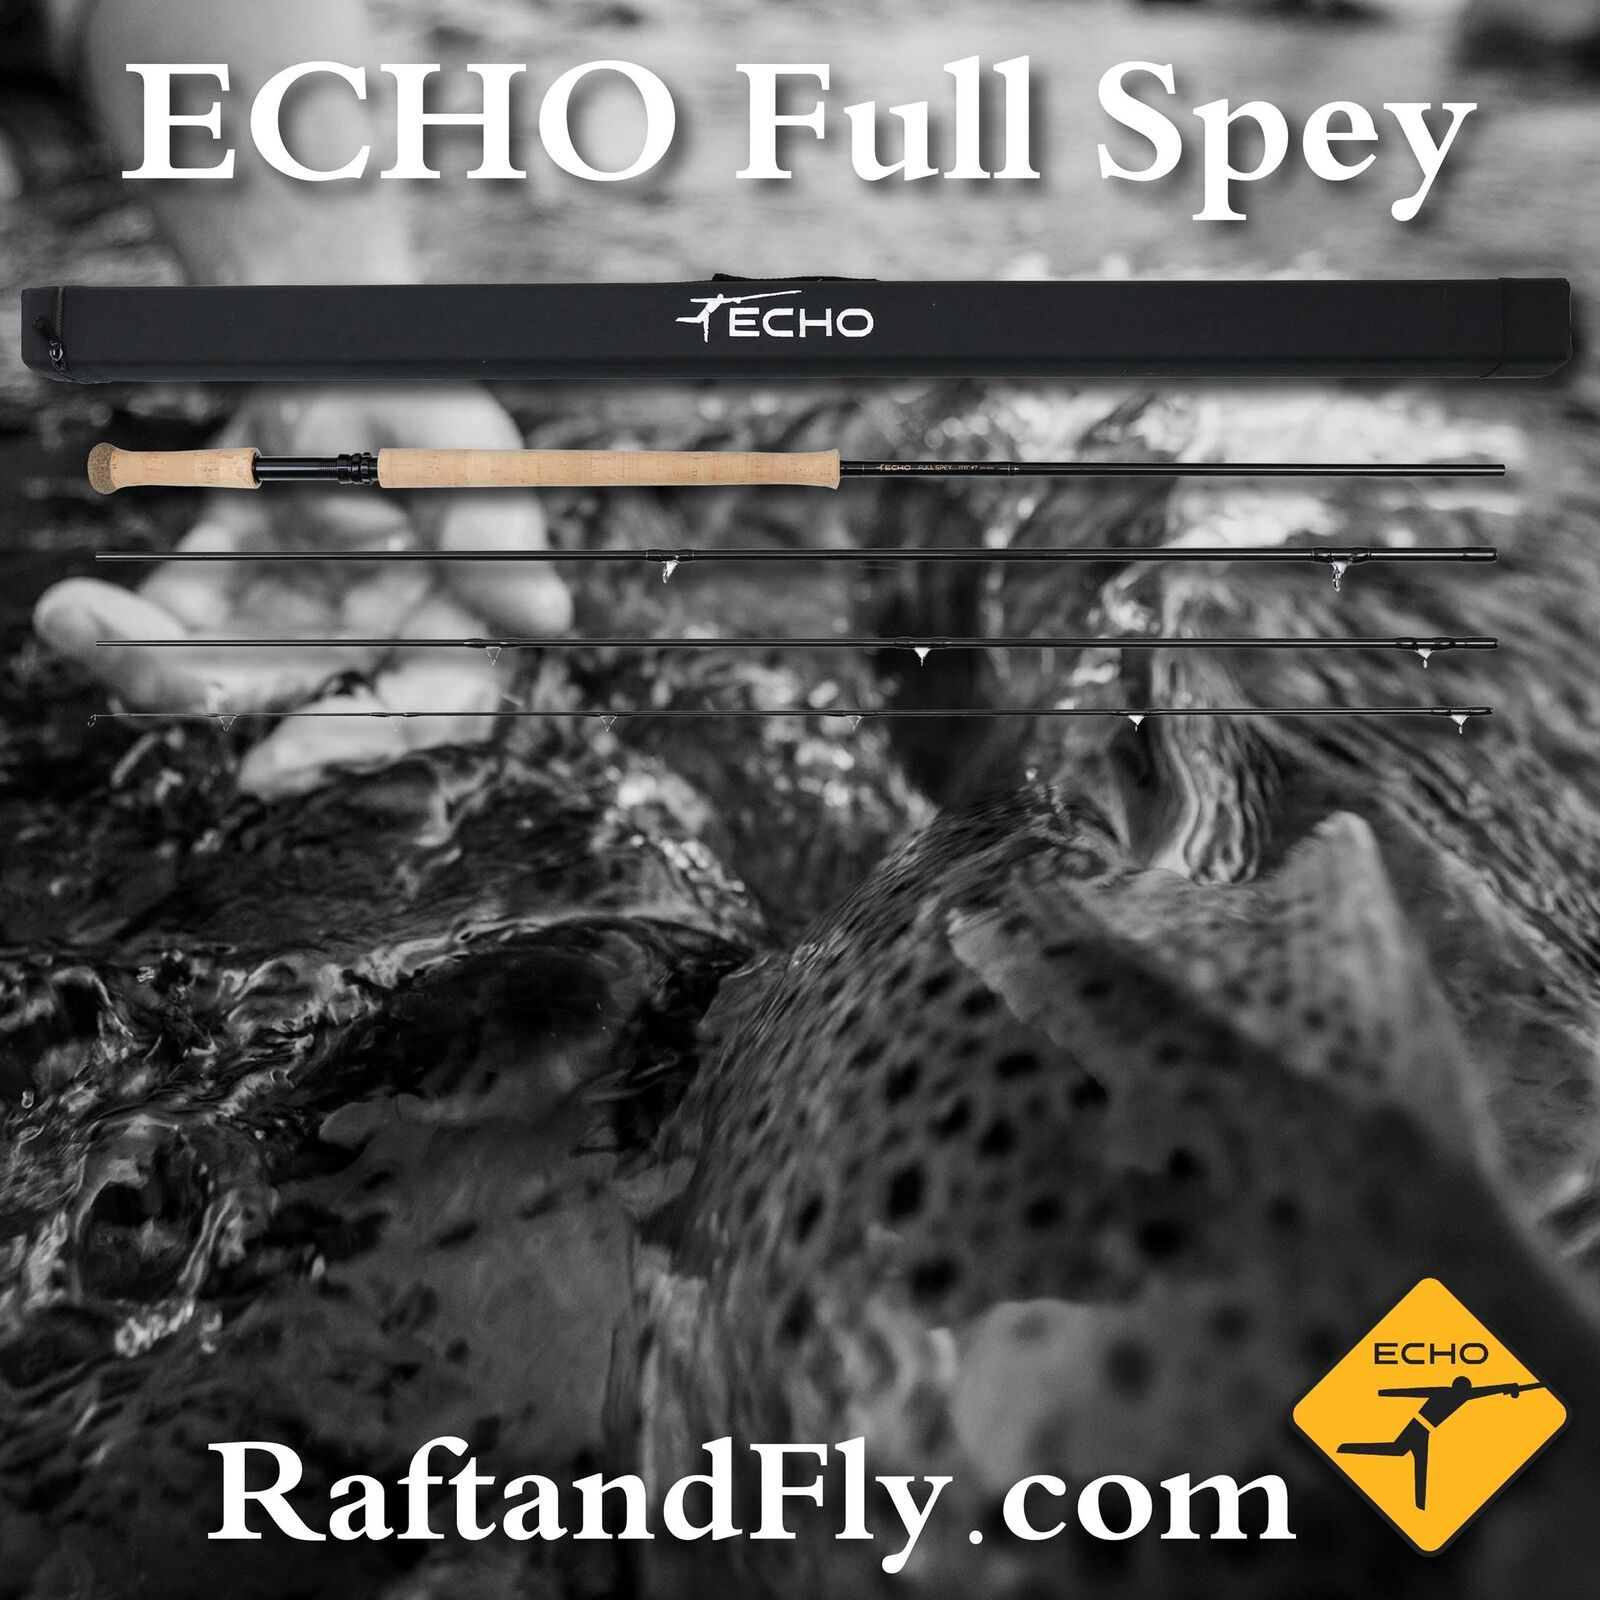 ECHO Full Spey 8wt 13'0  - New for 2019  - FREE SHIPPING